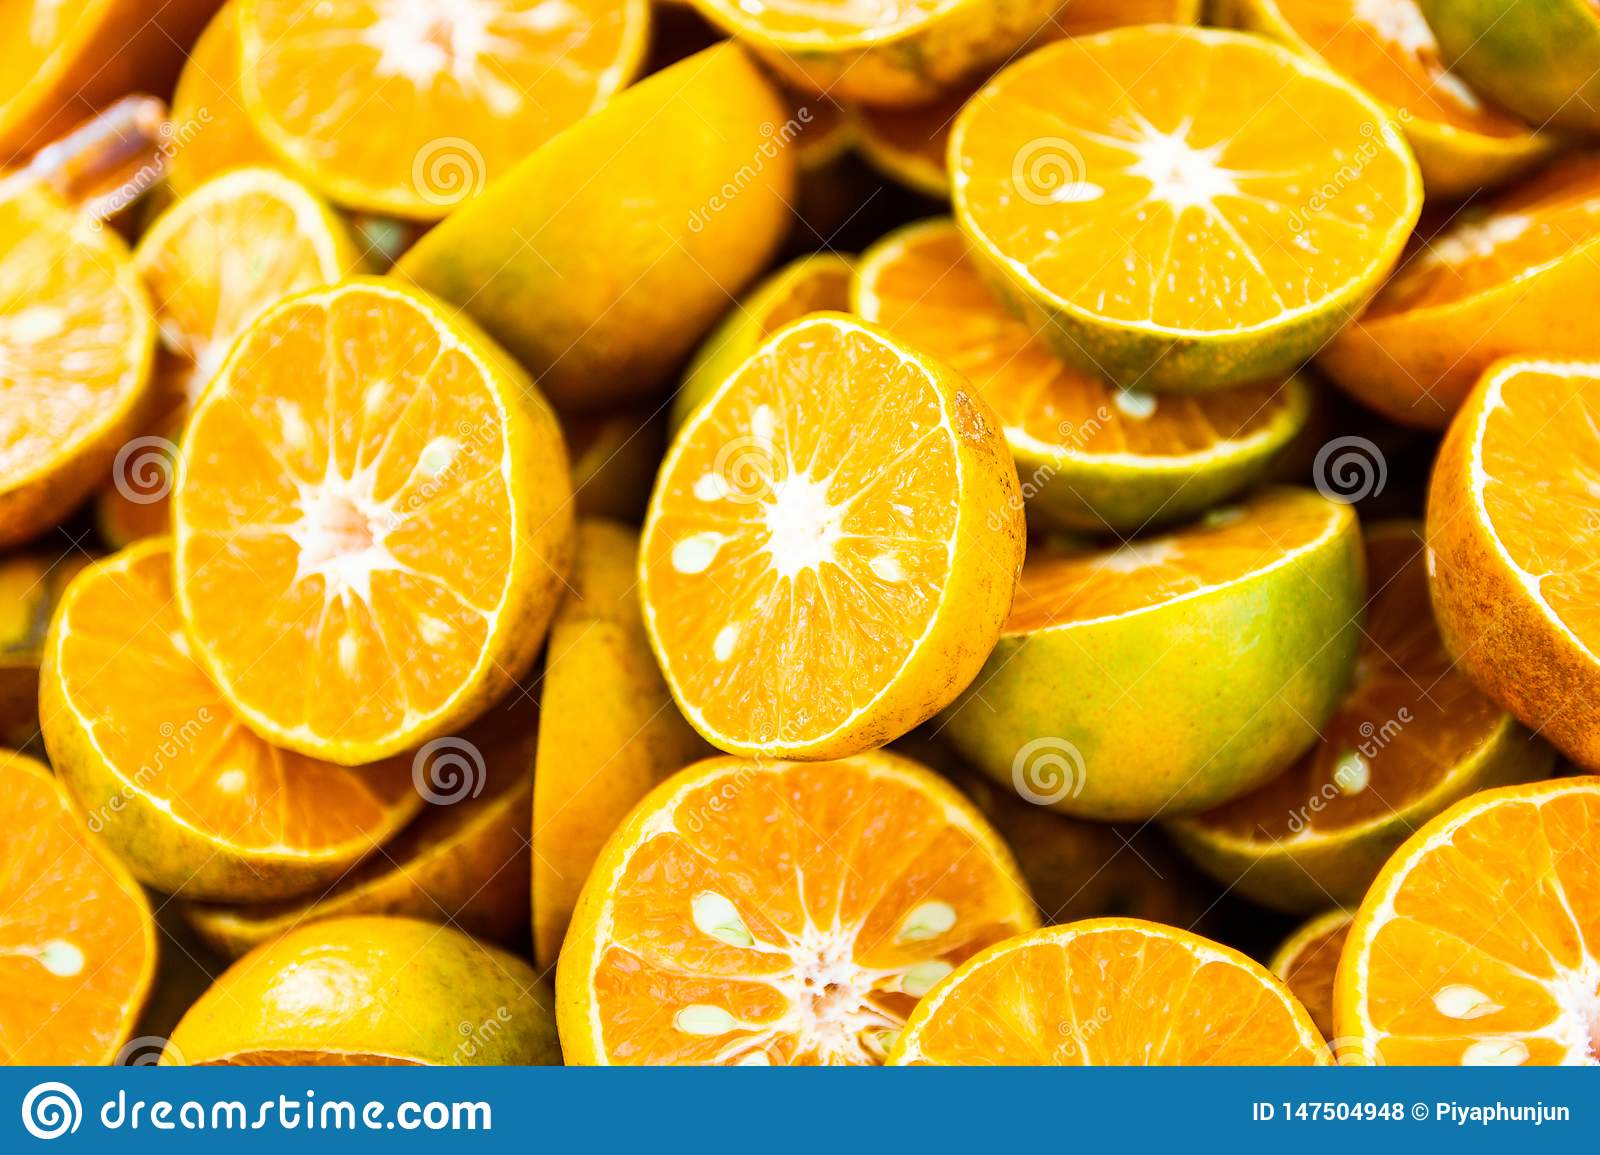 Fresh orange with orange halves on ice